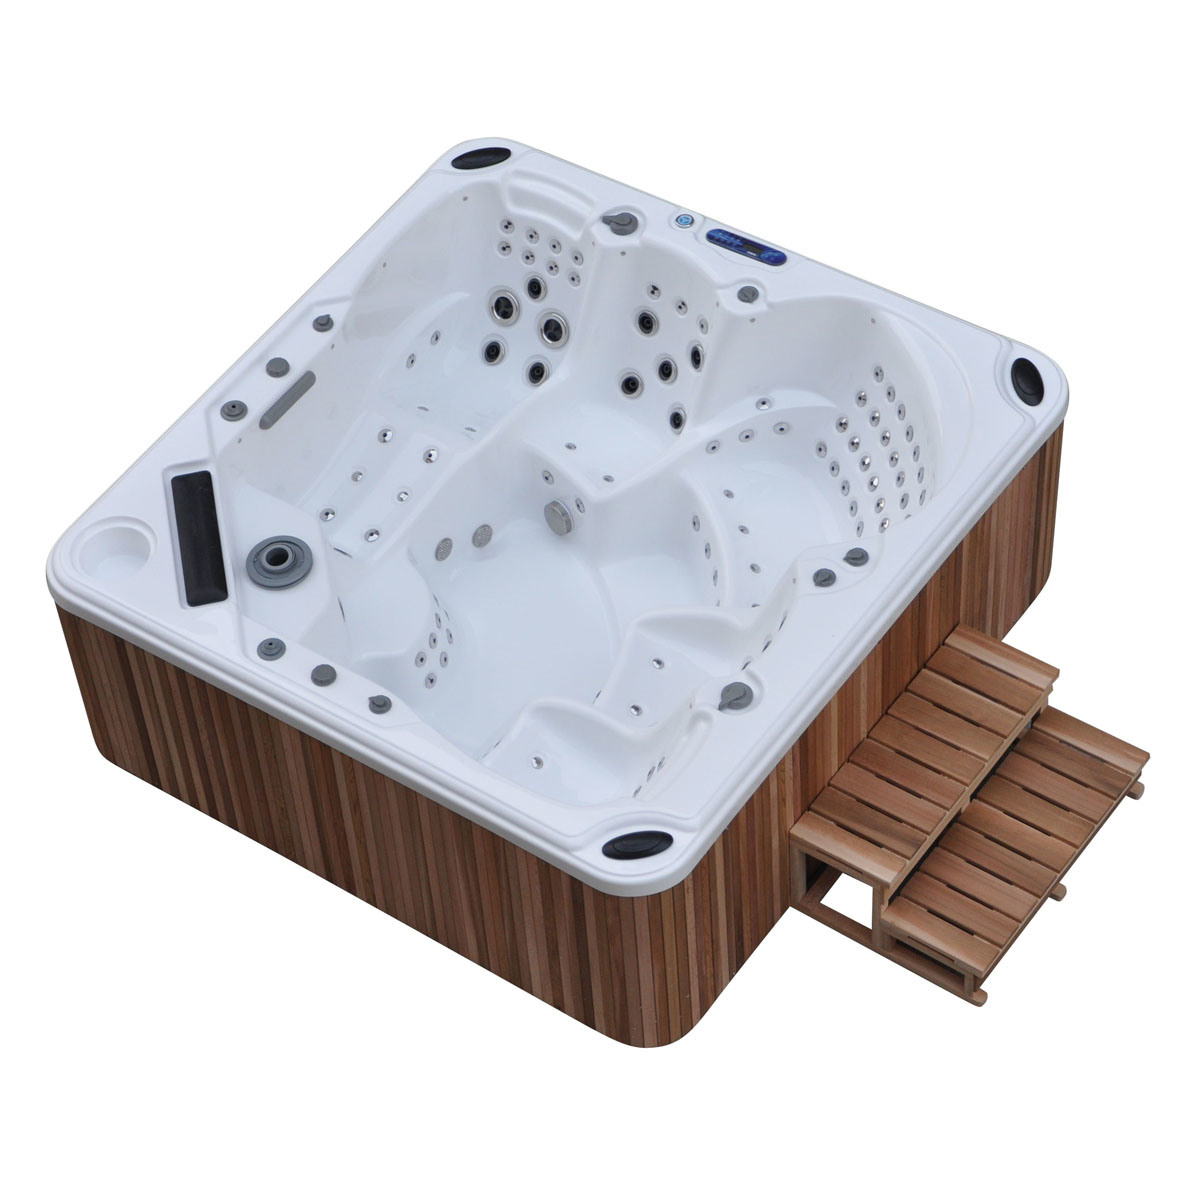 Whirlpool Outdoor Swim Spa China Outdoor Garden Hydro Galvanic Spa Whirlpool Unique